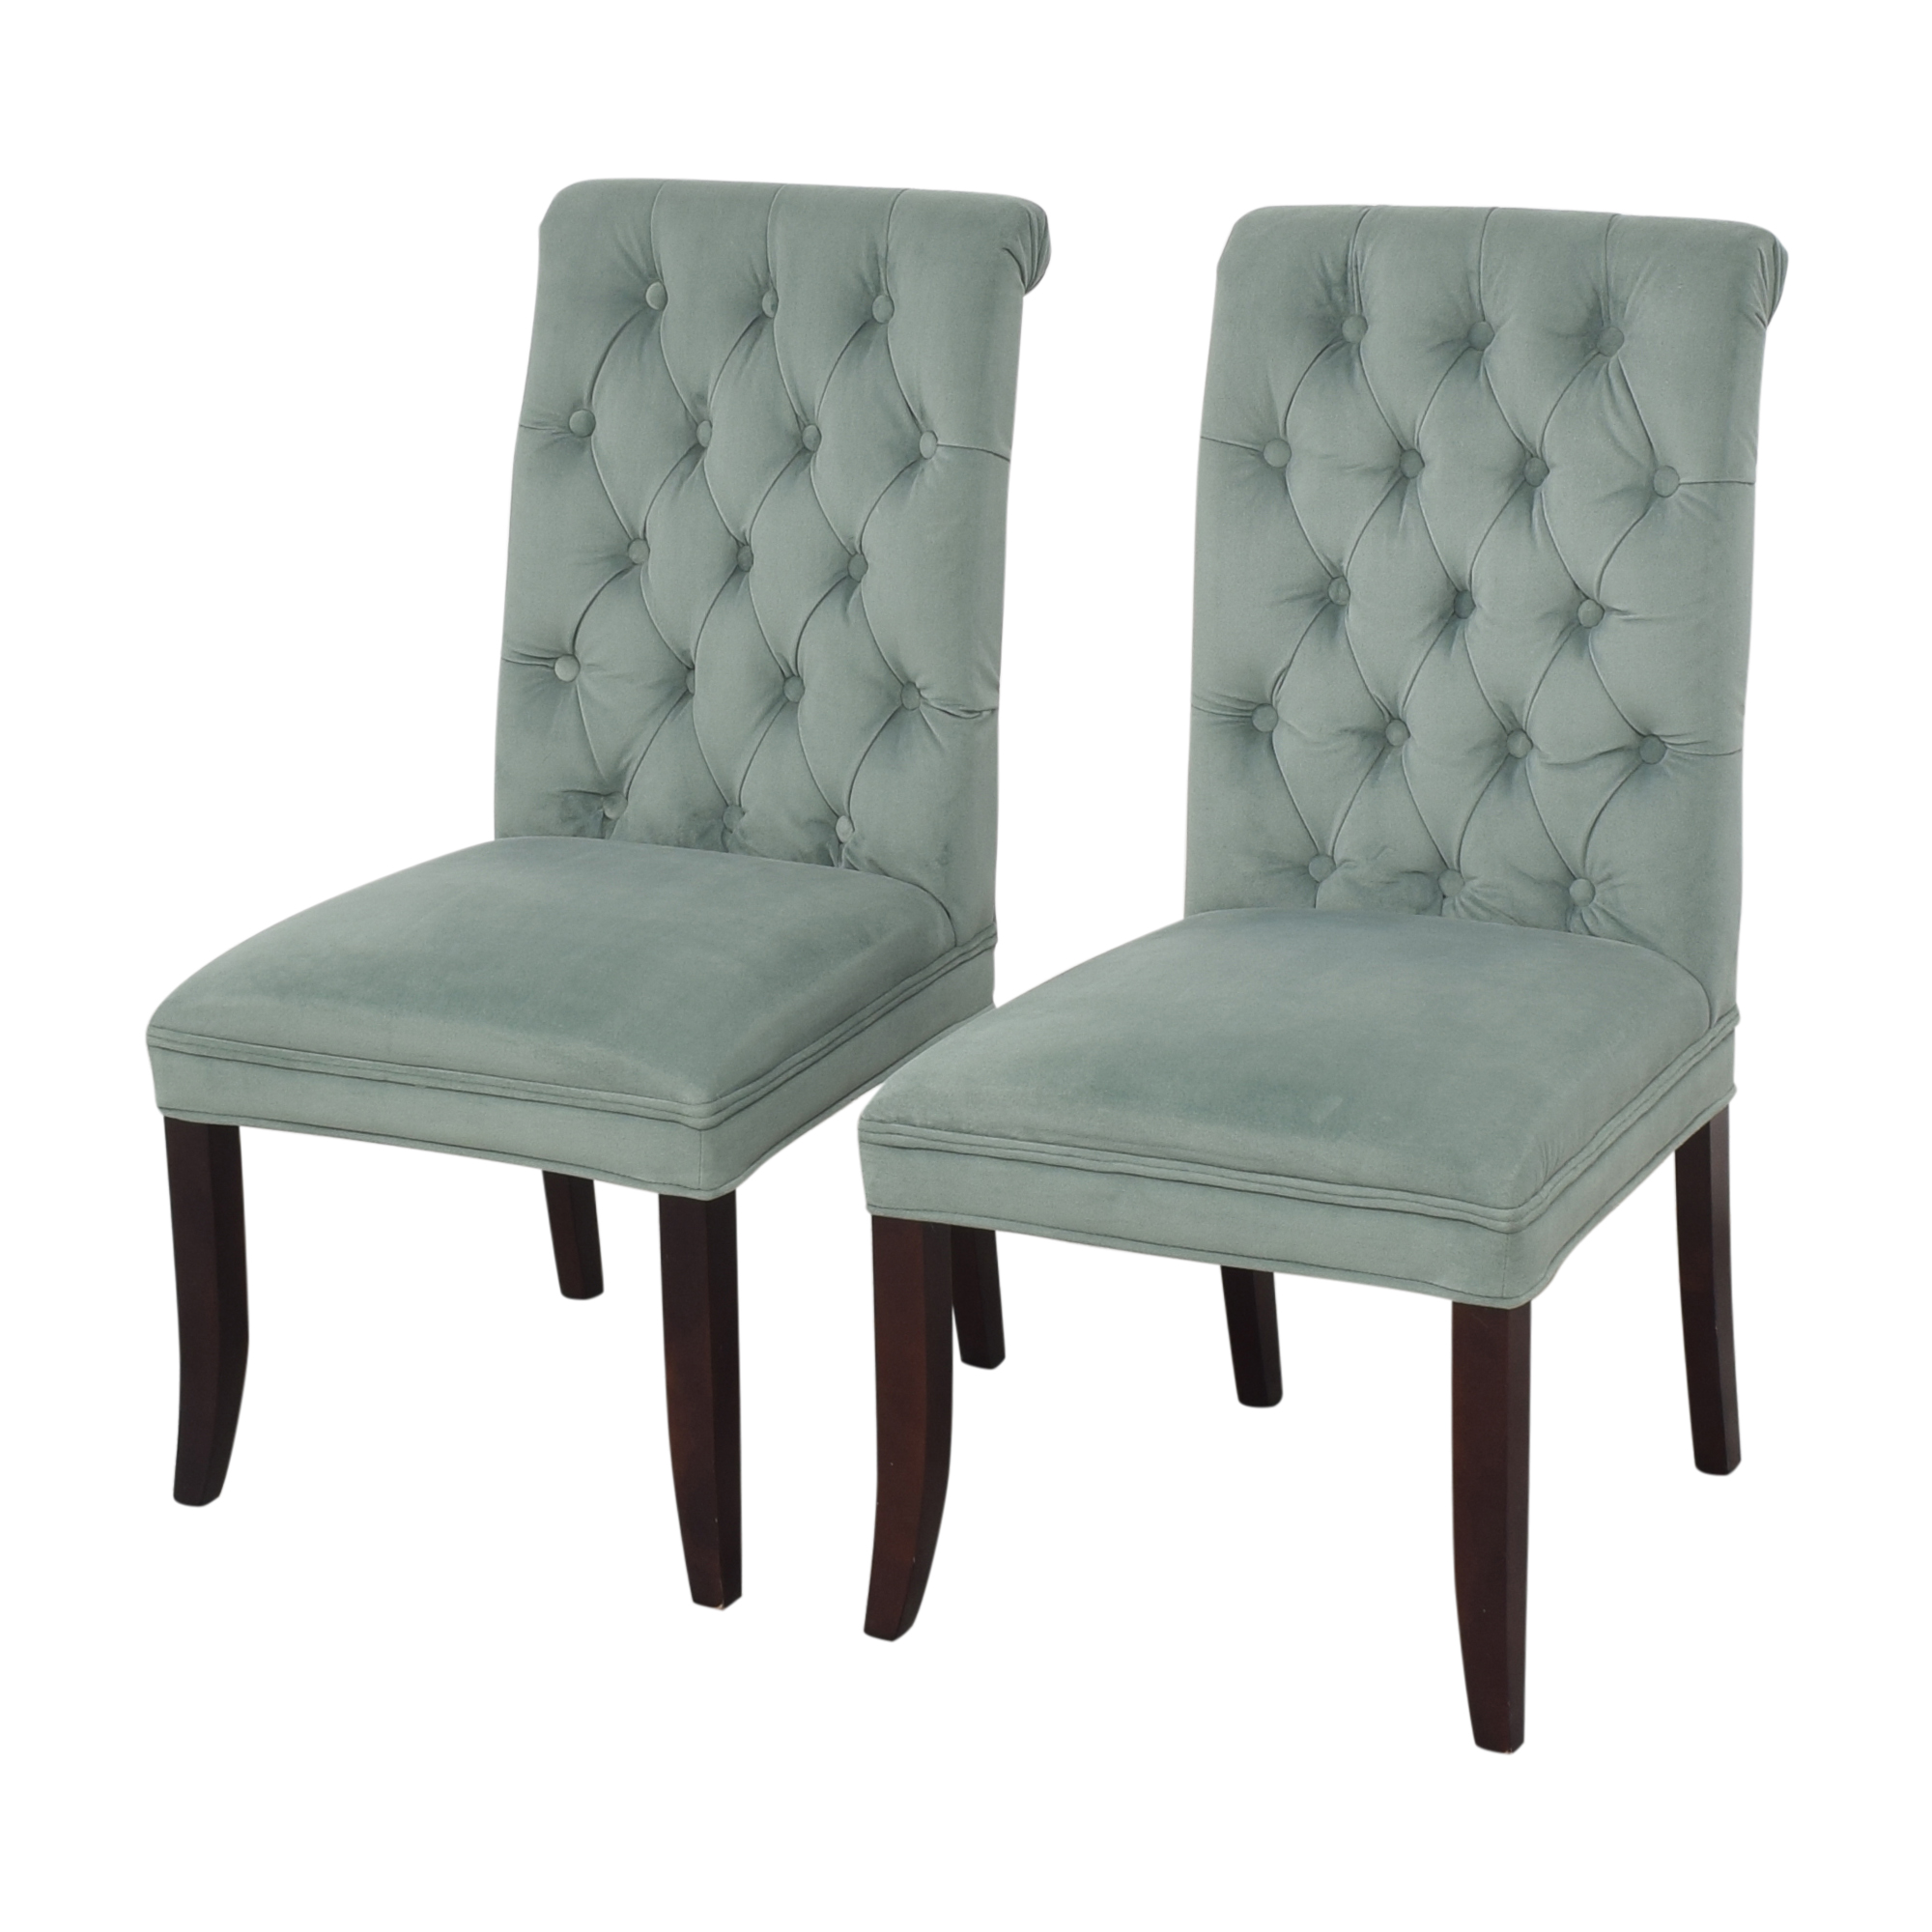 Pier 1 Pier 1 Audrey Dining Chairs ct